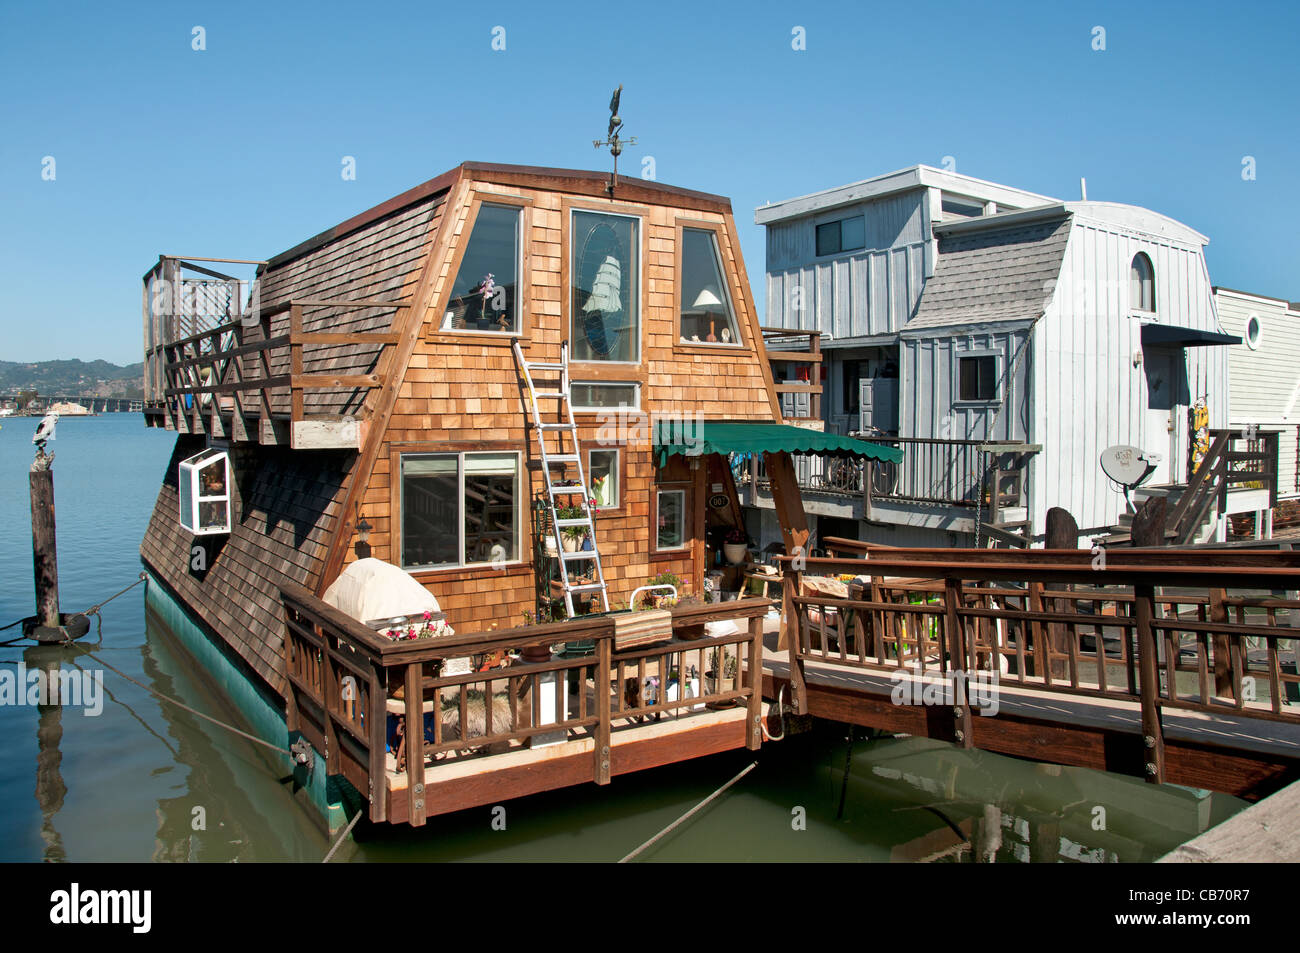 Sausalito's houseboat community San Francisco Bay California United States of America - Stock Image